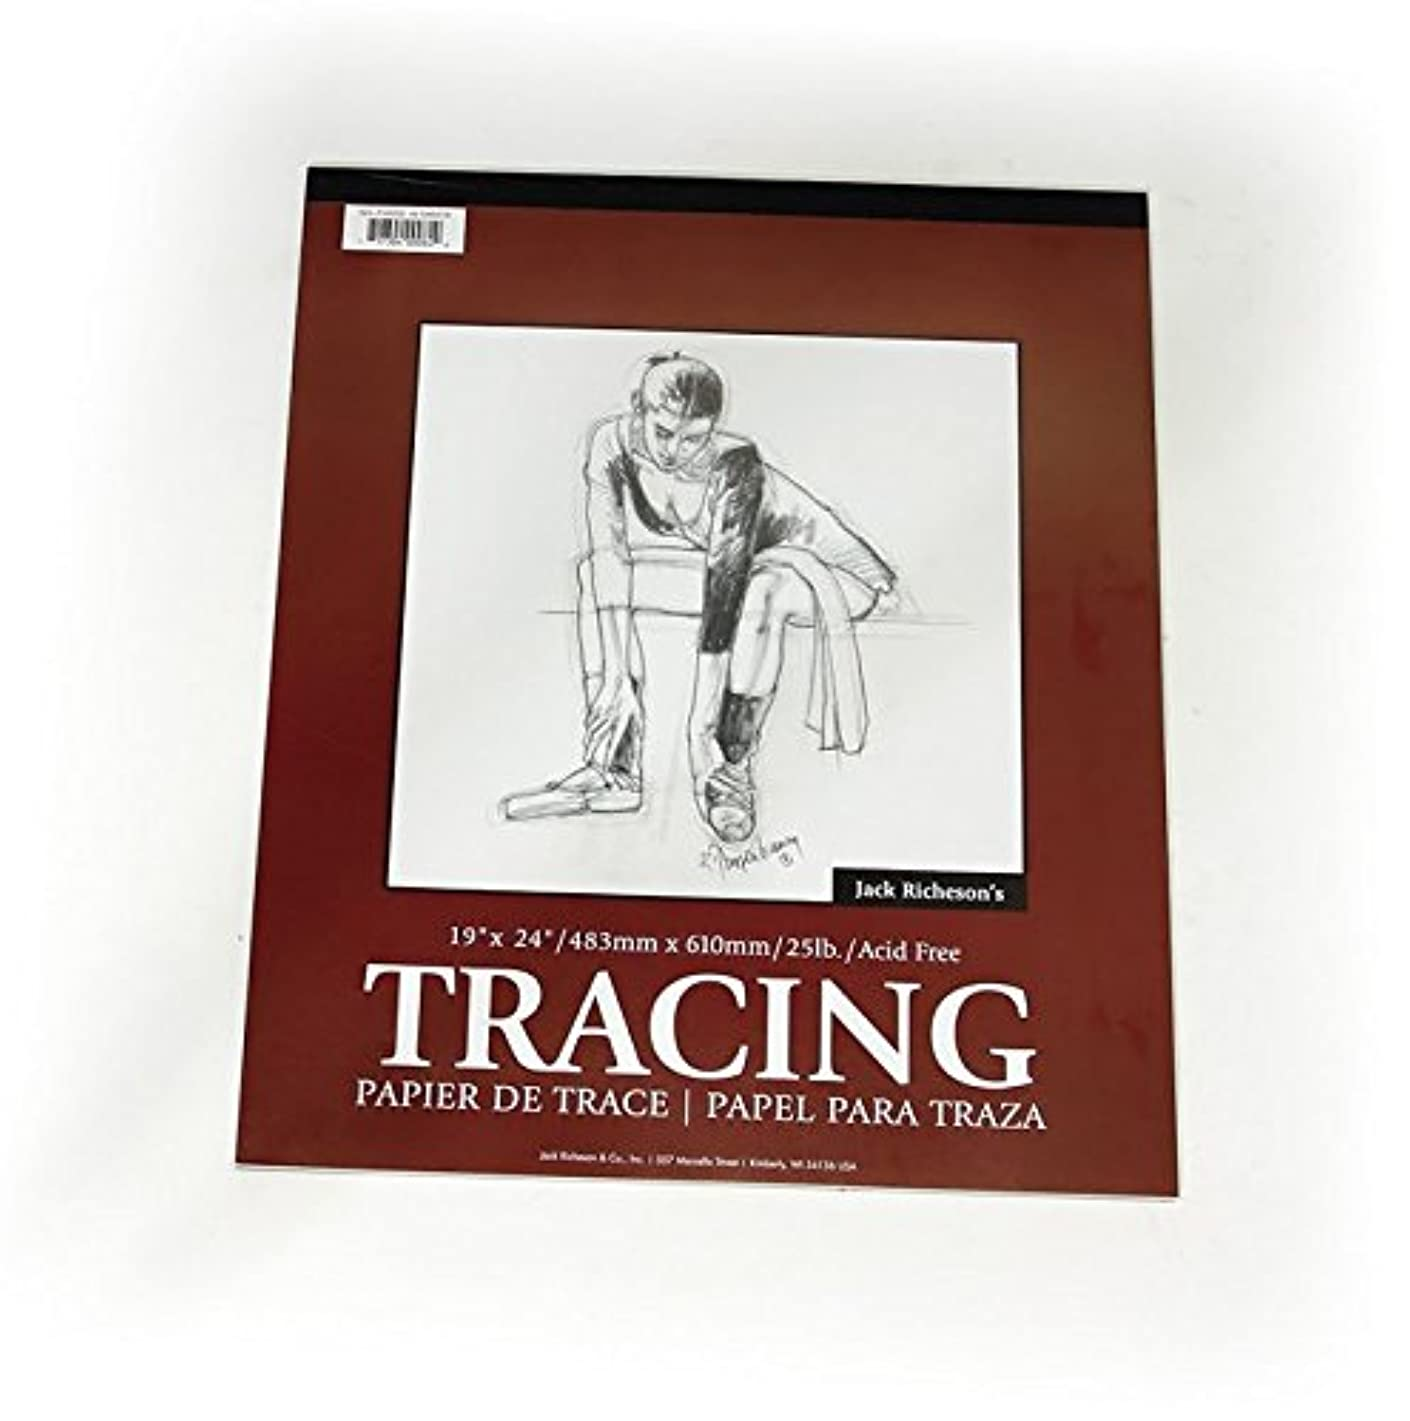 Jack Richeson Ape Binding Transparent Medium Weight Tracing Paper Pad (Pack of 50), 19 x 24